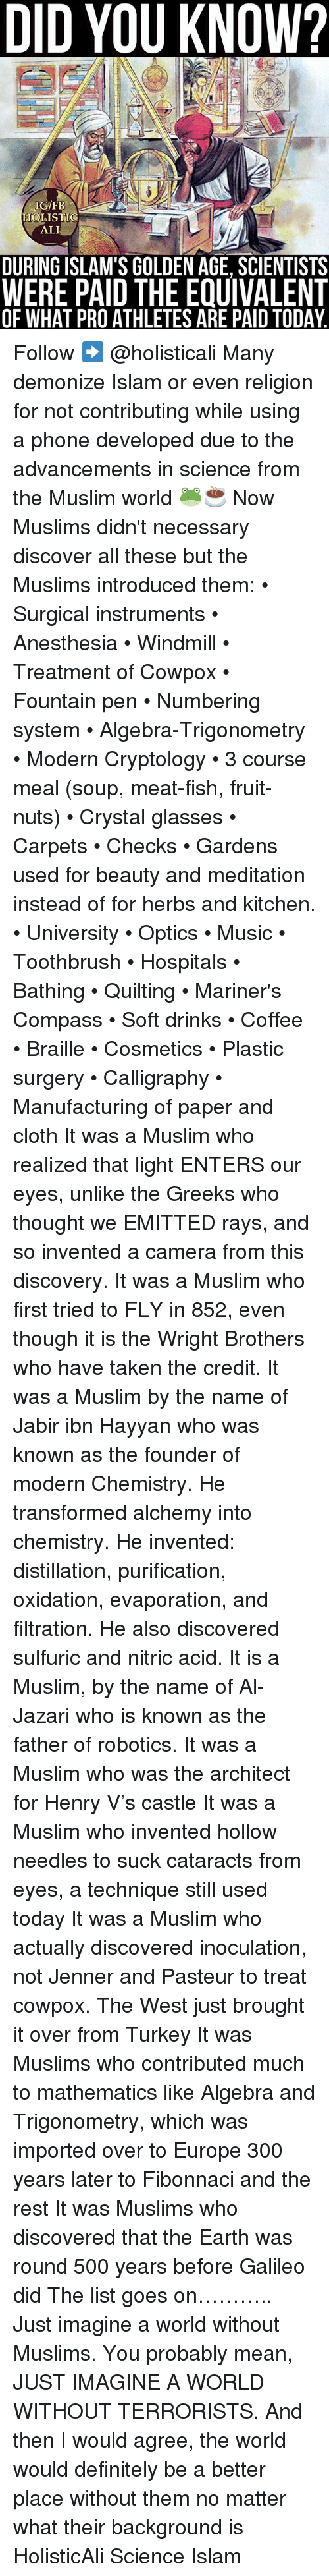 Turkeyism: DID YOU KNOW?  IG/FB  HOLISTIG  ALI  DURING ISLAM'S GOLDEN AGE, SCIENTISTS  WERE PAID THE EQUIVALENT  OF WHAT PROATHLETES ARE PAID TODAY. Follow ➡️ @holisticali Many demonize Islam or even religion for not contributing while using a phone developed due to the advancements in science from the Muslim world 🐸☕️ Now Muslims didn't necessary discover all these but the Muslims introduced them: • Surgical instruments • Anesthesia • Windmill • Treatment of Cowpox • Fountain pen • Numbering system • Algebra-Trigonometry • Modern Cryptology • 3 course meal (soup, meat-fish, fruit-nuts) • Crystal glasses • Carpets • Checks • Gardens used for beauty and meditation instead of for herbs and kitchen. • University • Optics • Music • Toothbrush • Hospitals • Bathing • Quilting • Mariner's Compass • Soft drinks • Coffee • Braille • Cosmetics • Plastic surgery • Calligraphy • Manufacturing of paper and cloth It was a Muslim who realized that light ENTERS our eyes, unlike the Greeks who thought we EMITTED rays, and so invented a camera from this discovery. It was a Muslim who first tried to FLY in 852, even though it is the Wright Brothers who have taken the credit. It was a Muslim by the name of Jabir ibn Hayyan who was known as the founder of modern Chemistry. He transformed alchemy into chemistry. He invented: distillation, purification, oxidation, evaporation, and filtration. He also discovered sulfuric and nitric acid. It is a Muslim, by the name of Al-Jazari who is known as the father of robotics. It was a Muslim who was the architect for Henry V's castle It was a Muslim who invented hollow needles to suck cataracts from eyes, a technique still used today It was a Muslim who actually discovered inoculation, not Jenner and Pasteur to treat cowpox. The West just brought it over from Turkey It was Muslims who contributed much to mathematics like Algebra and Trigonometry, which was imported over to Europe 300 years later to Fibonnaci and the rest It was Muslims who discove